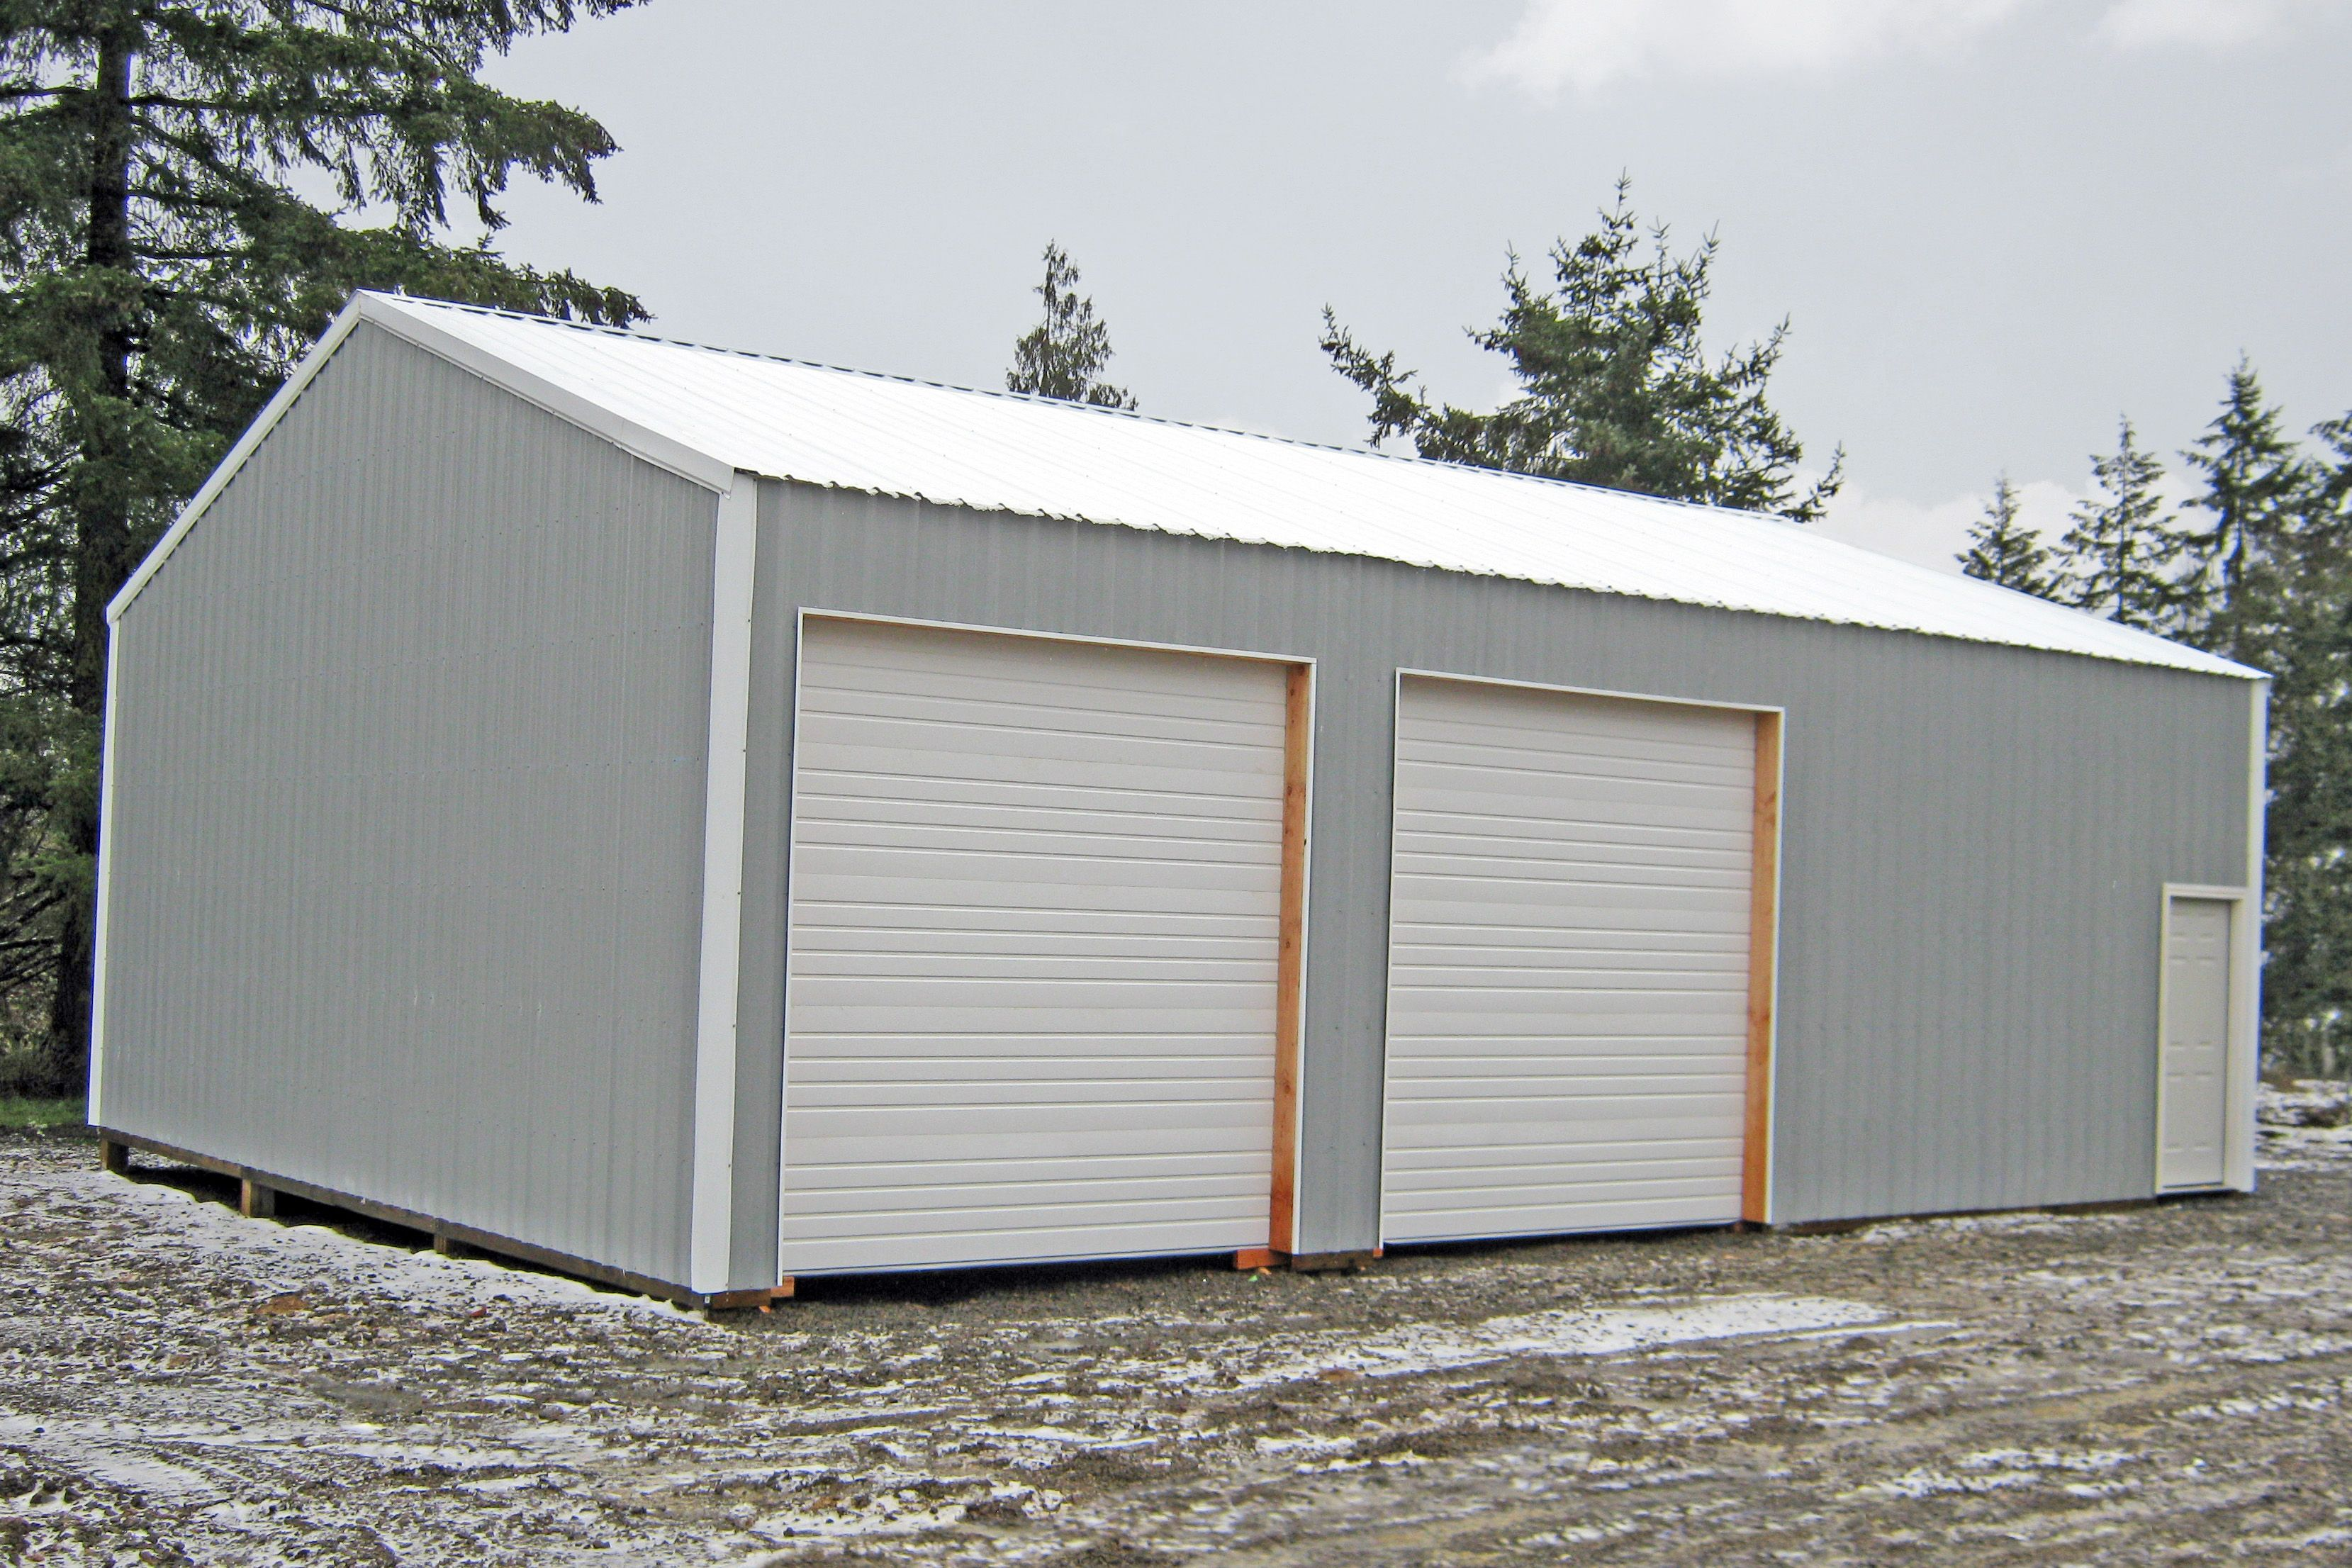 30 X 40 X 12 Residential Pole Building With Overhead Doors And Walk In Door Barns Sheds Garden Storage Shed Building A Garage